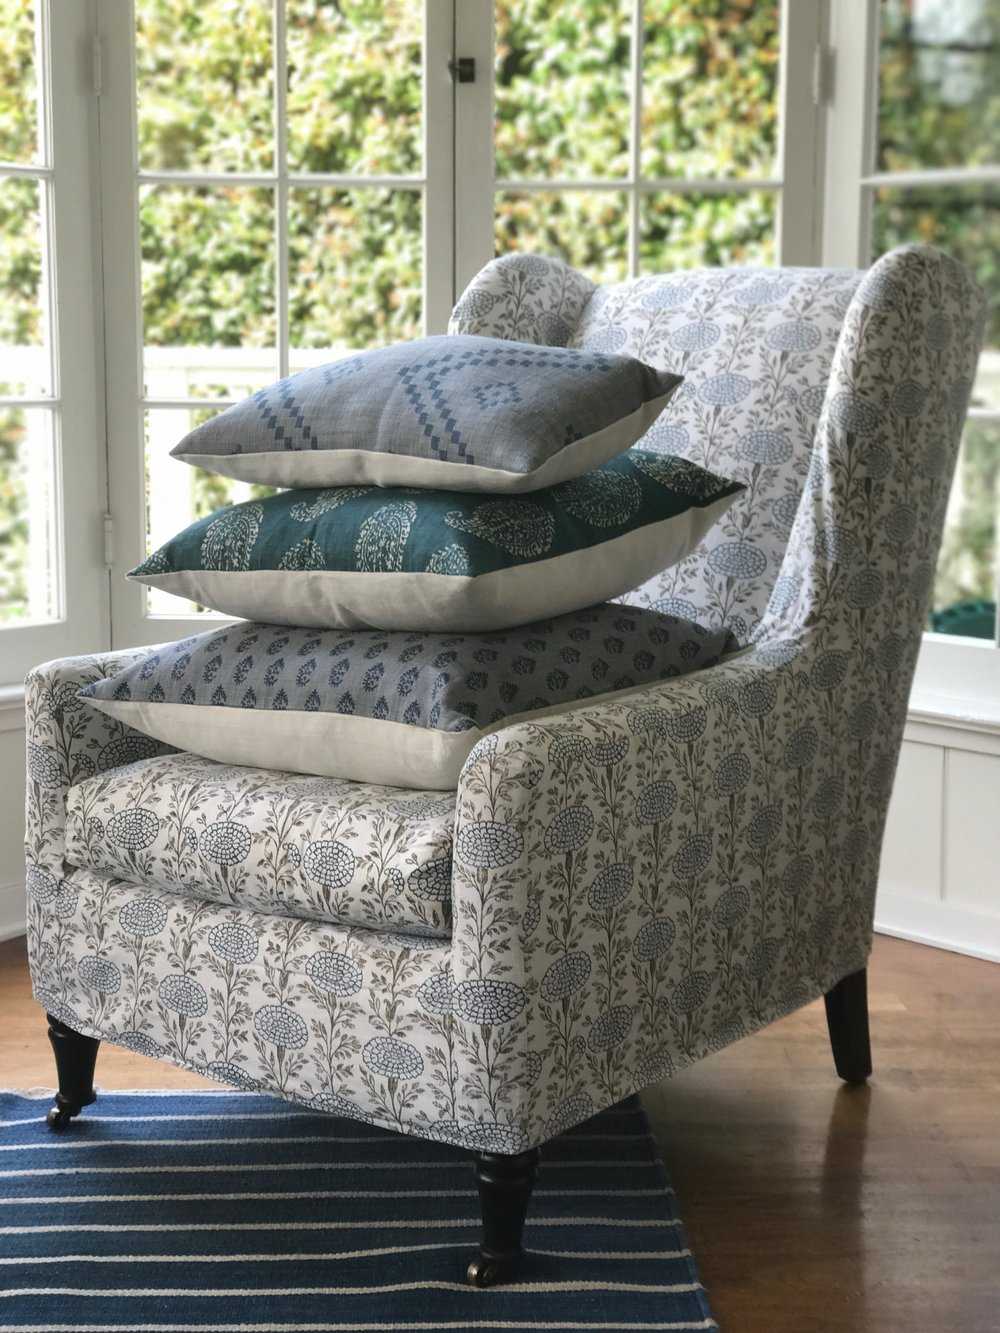 Malibu Wing Chair with pillows